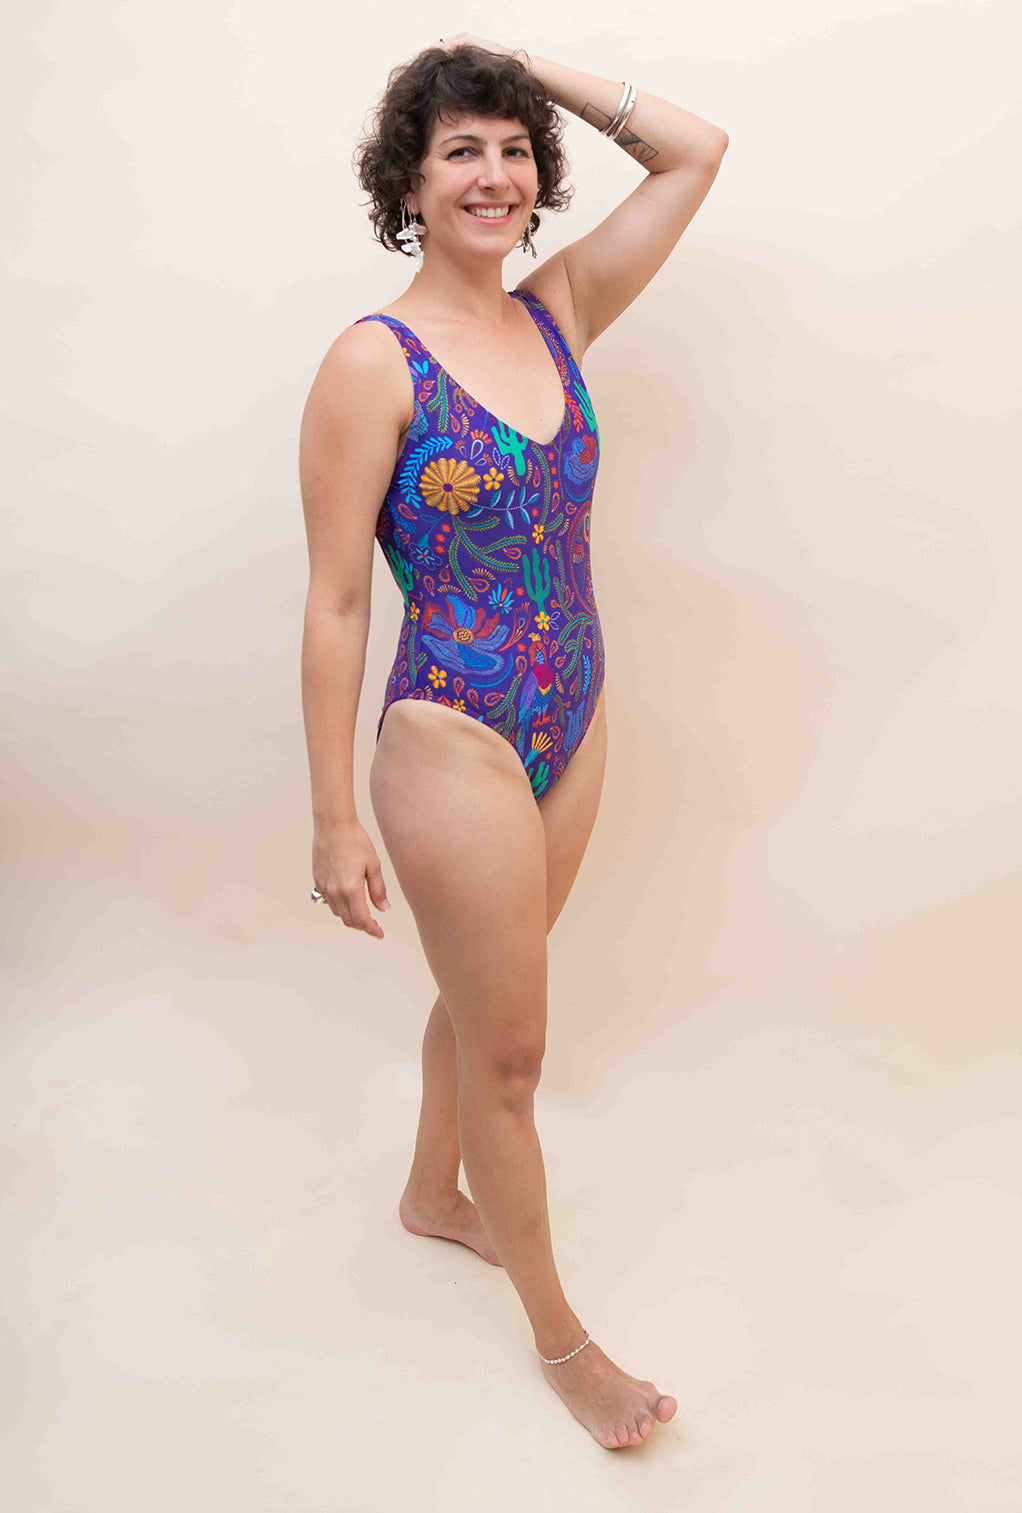 The Classic Swimsuit - Purple with Mexican Symbols